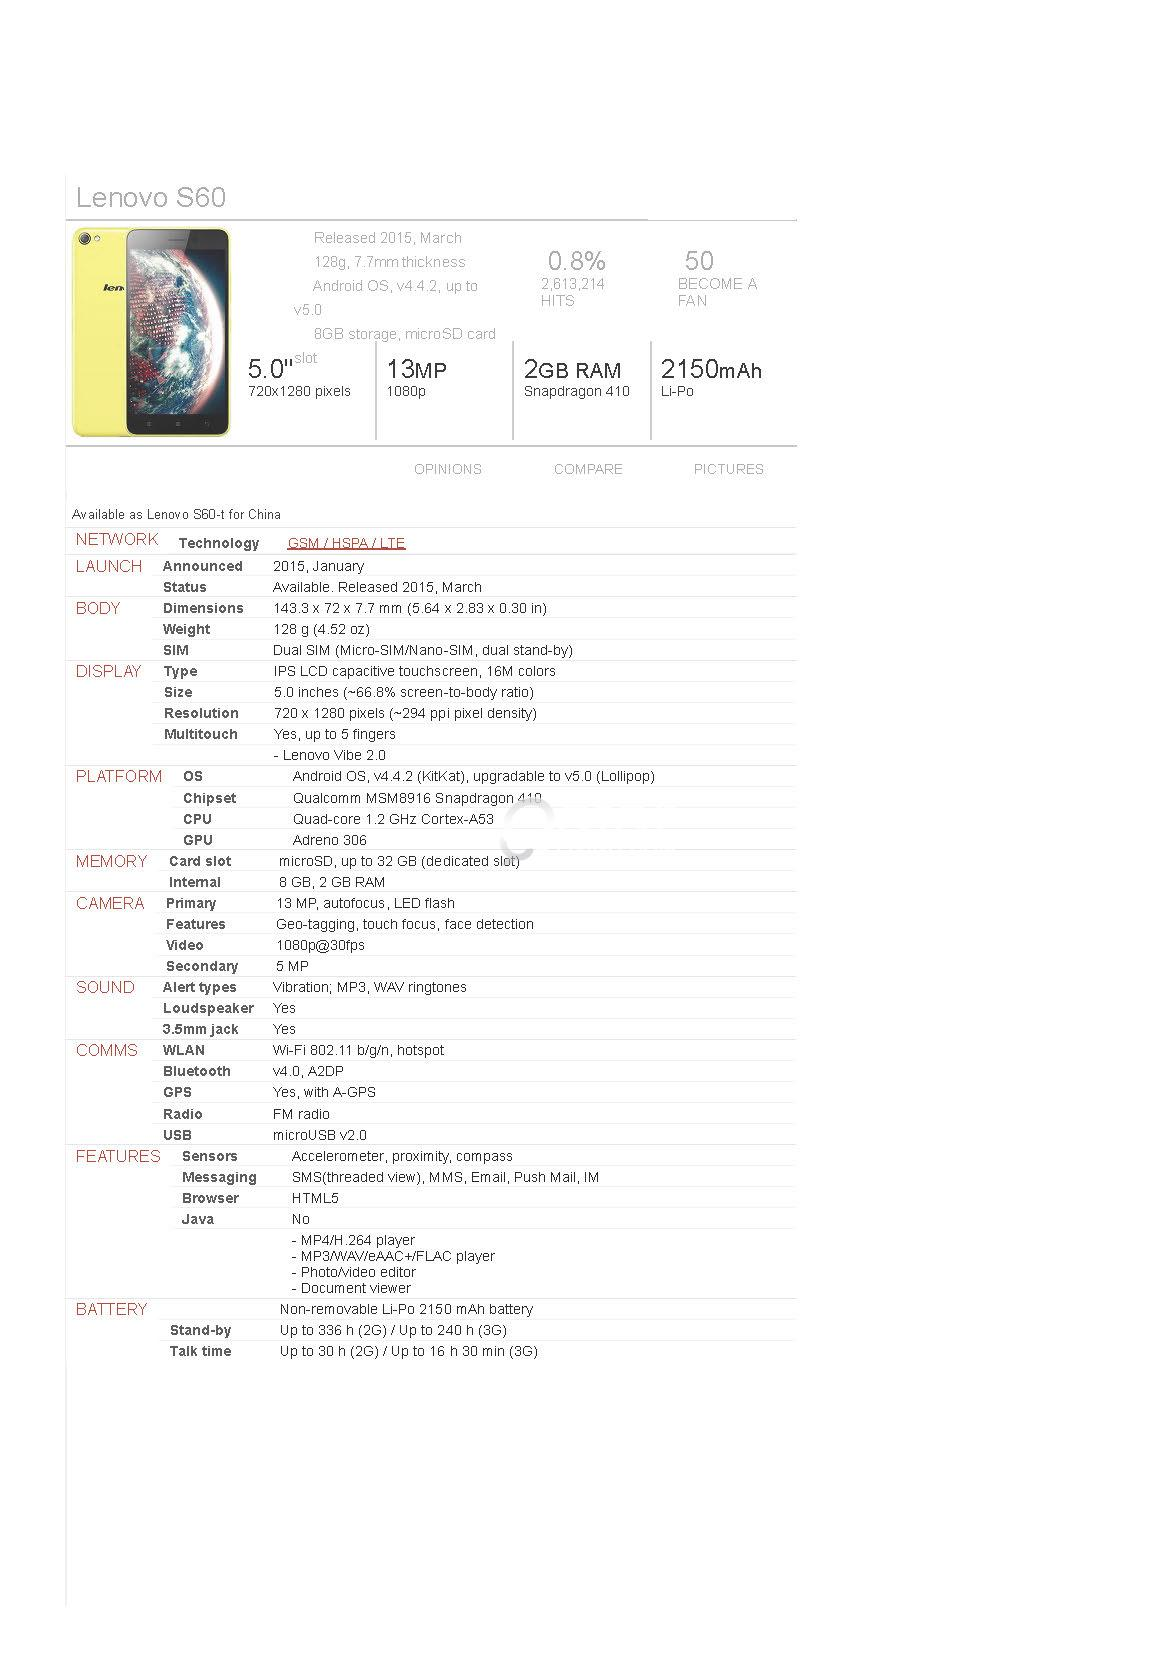 LENOVO A319 & S60 for Sale (Buy one Take One)Package DEAL